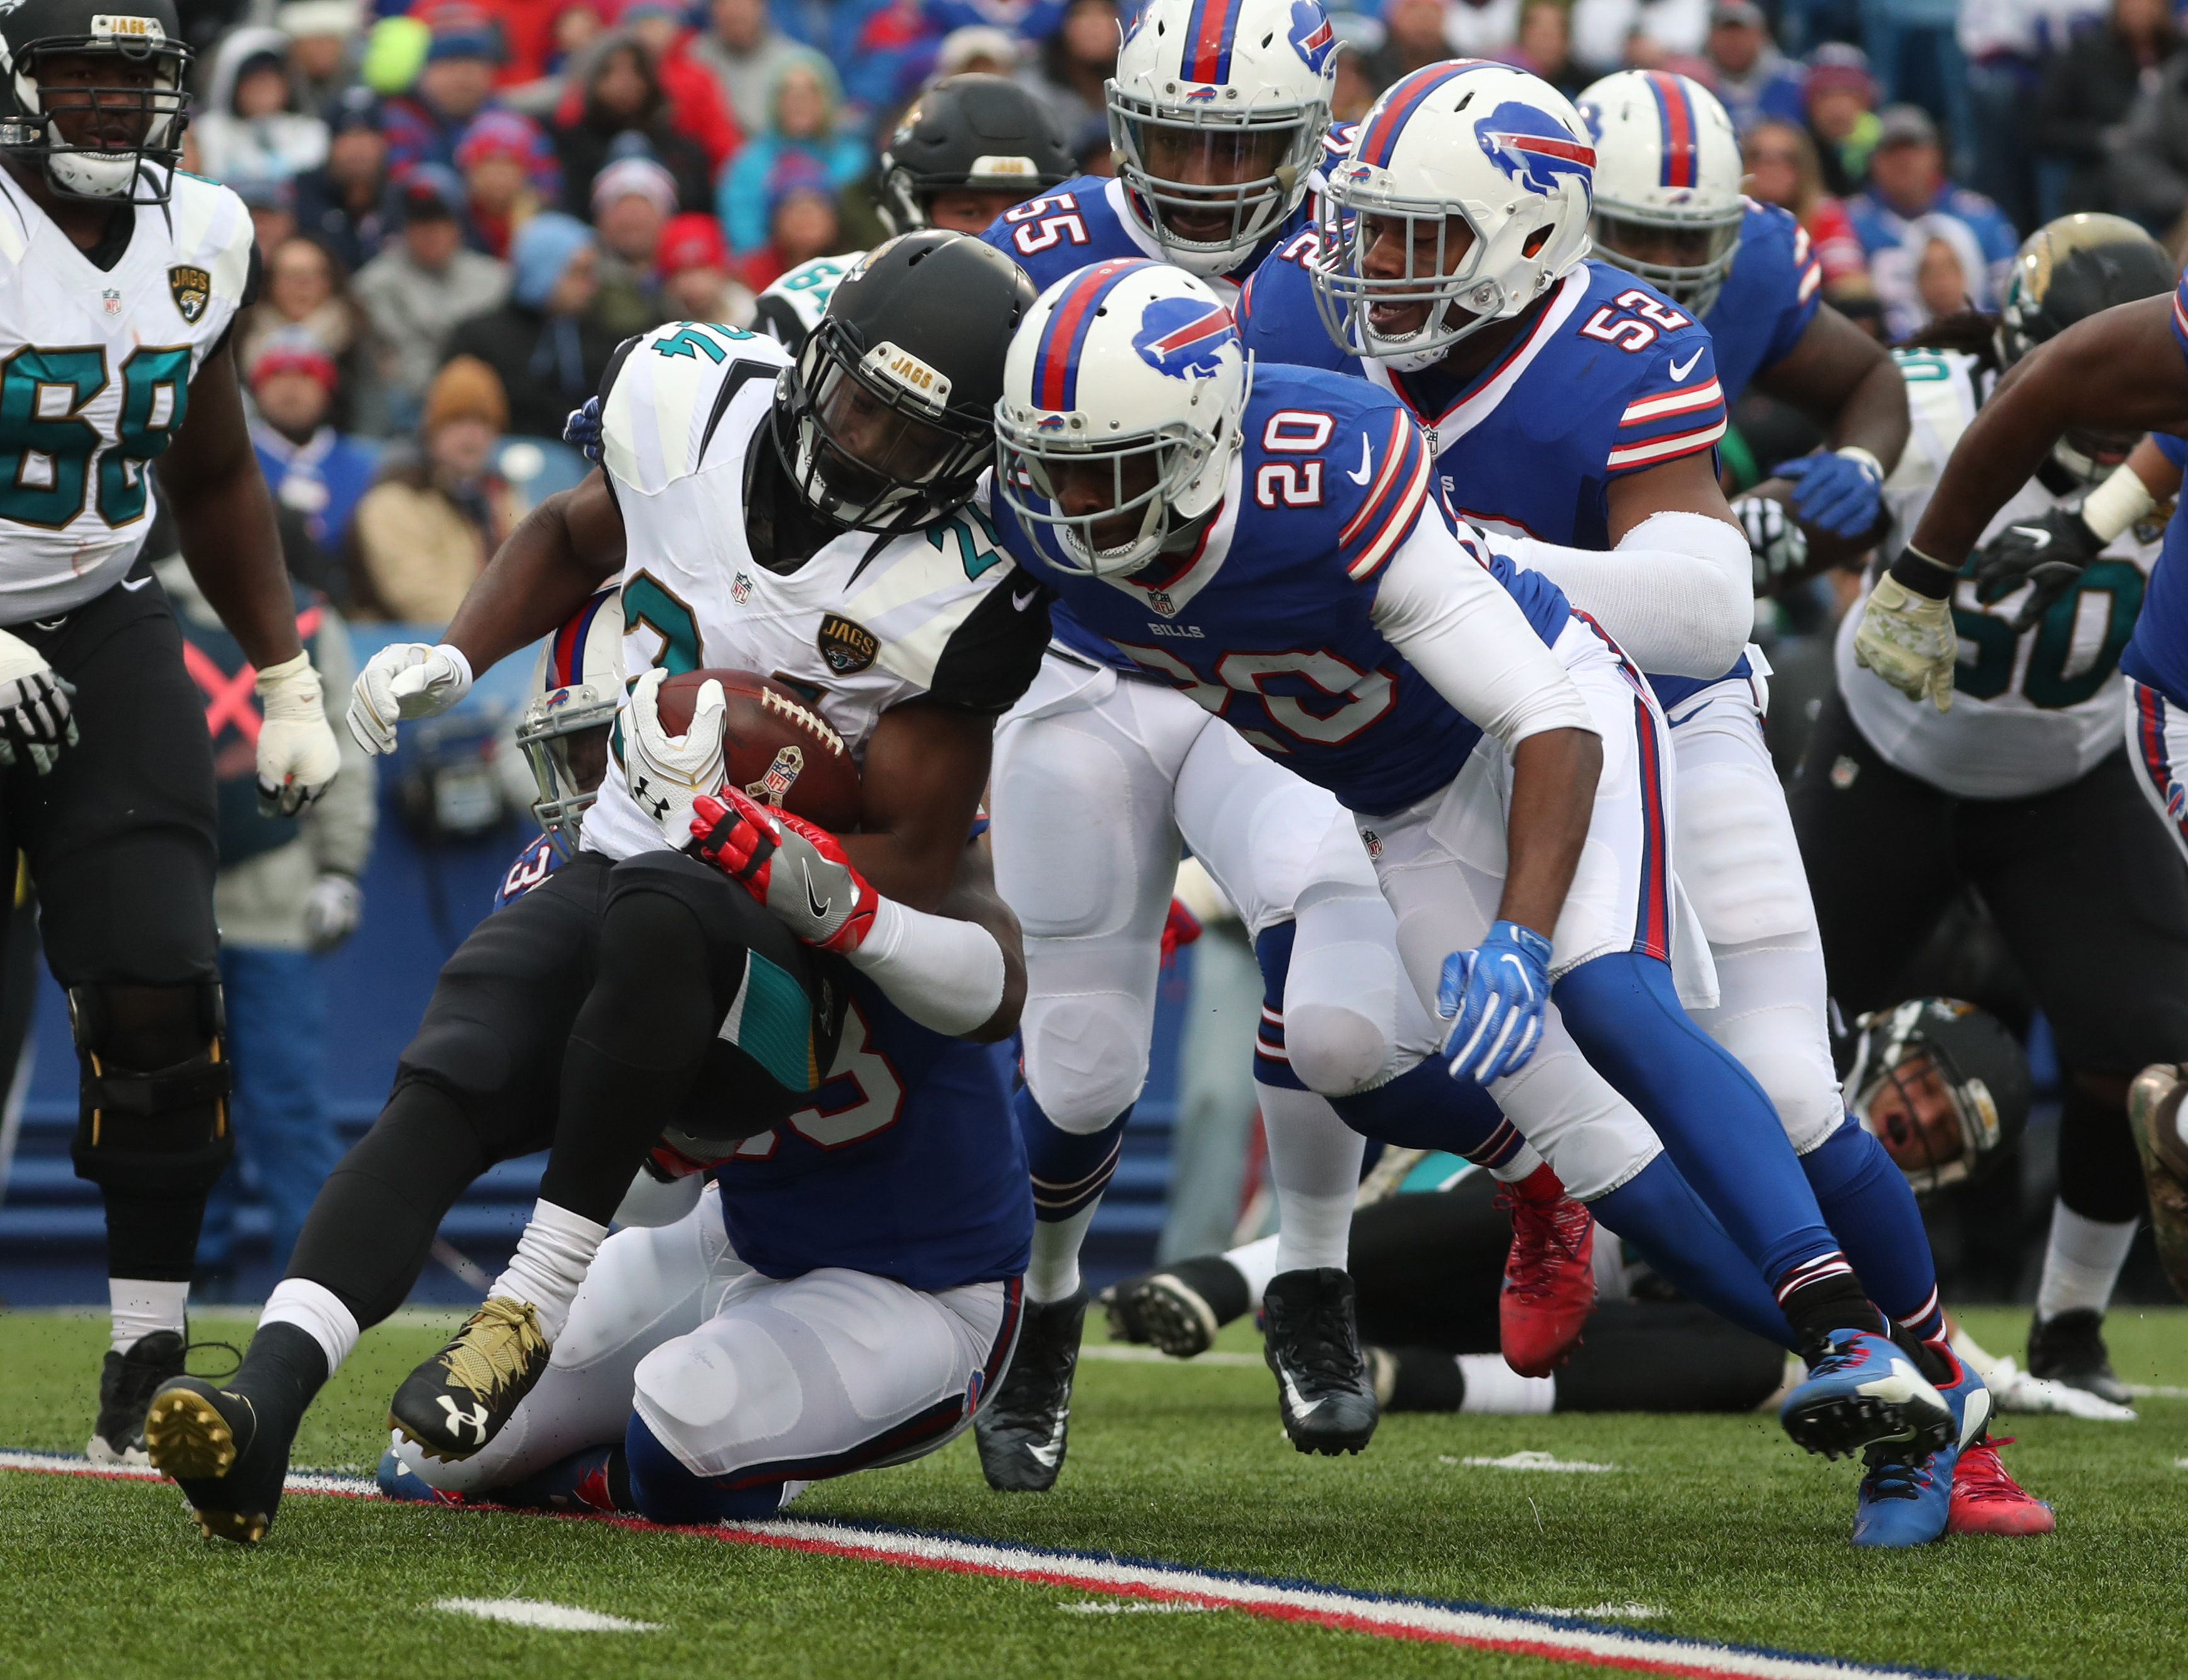 Buffalo Bills free safety Corey Graham (20) tackles Jacksonville Jaguars running back T.J. Yeldon (24) for a loss in the second quarter. (James P. McCoy/Buffalo News)